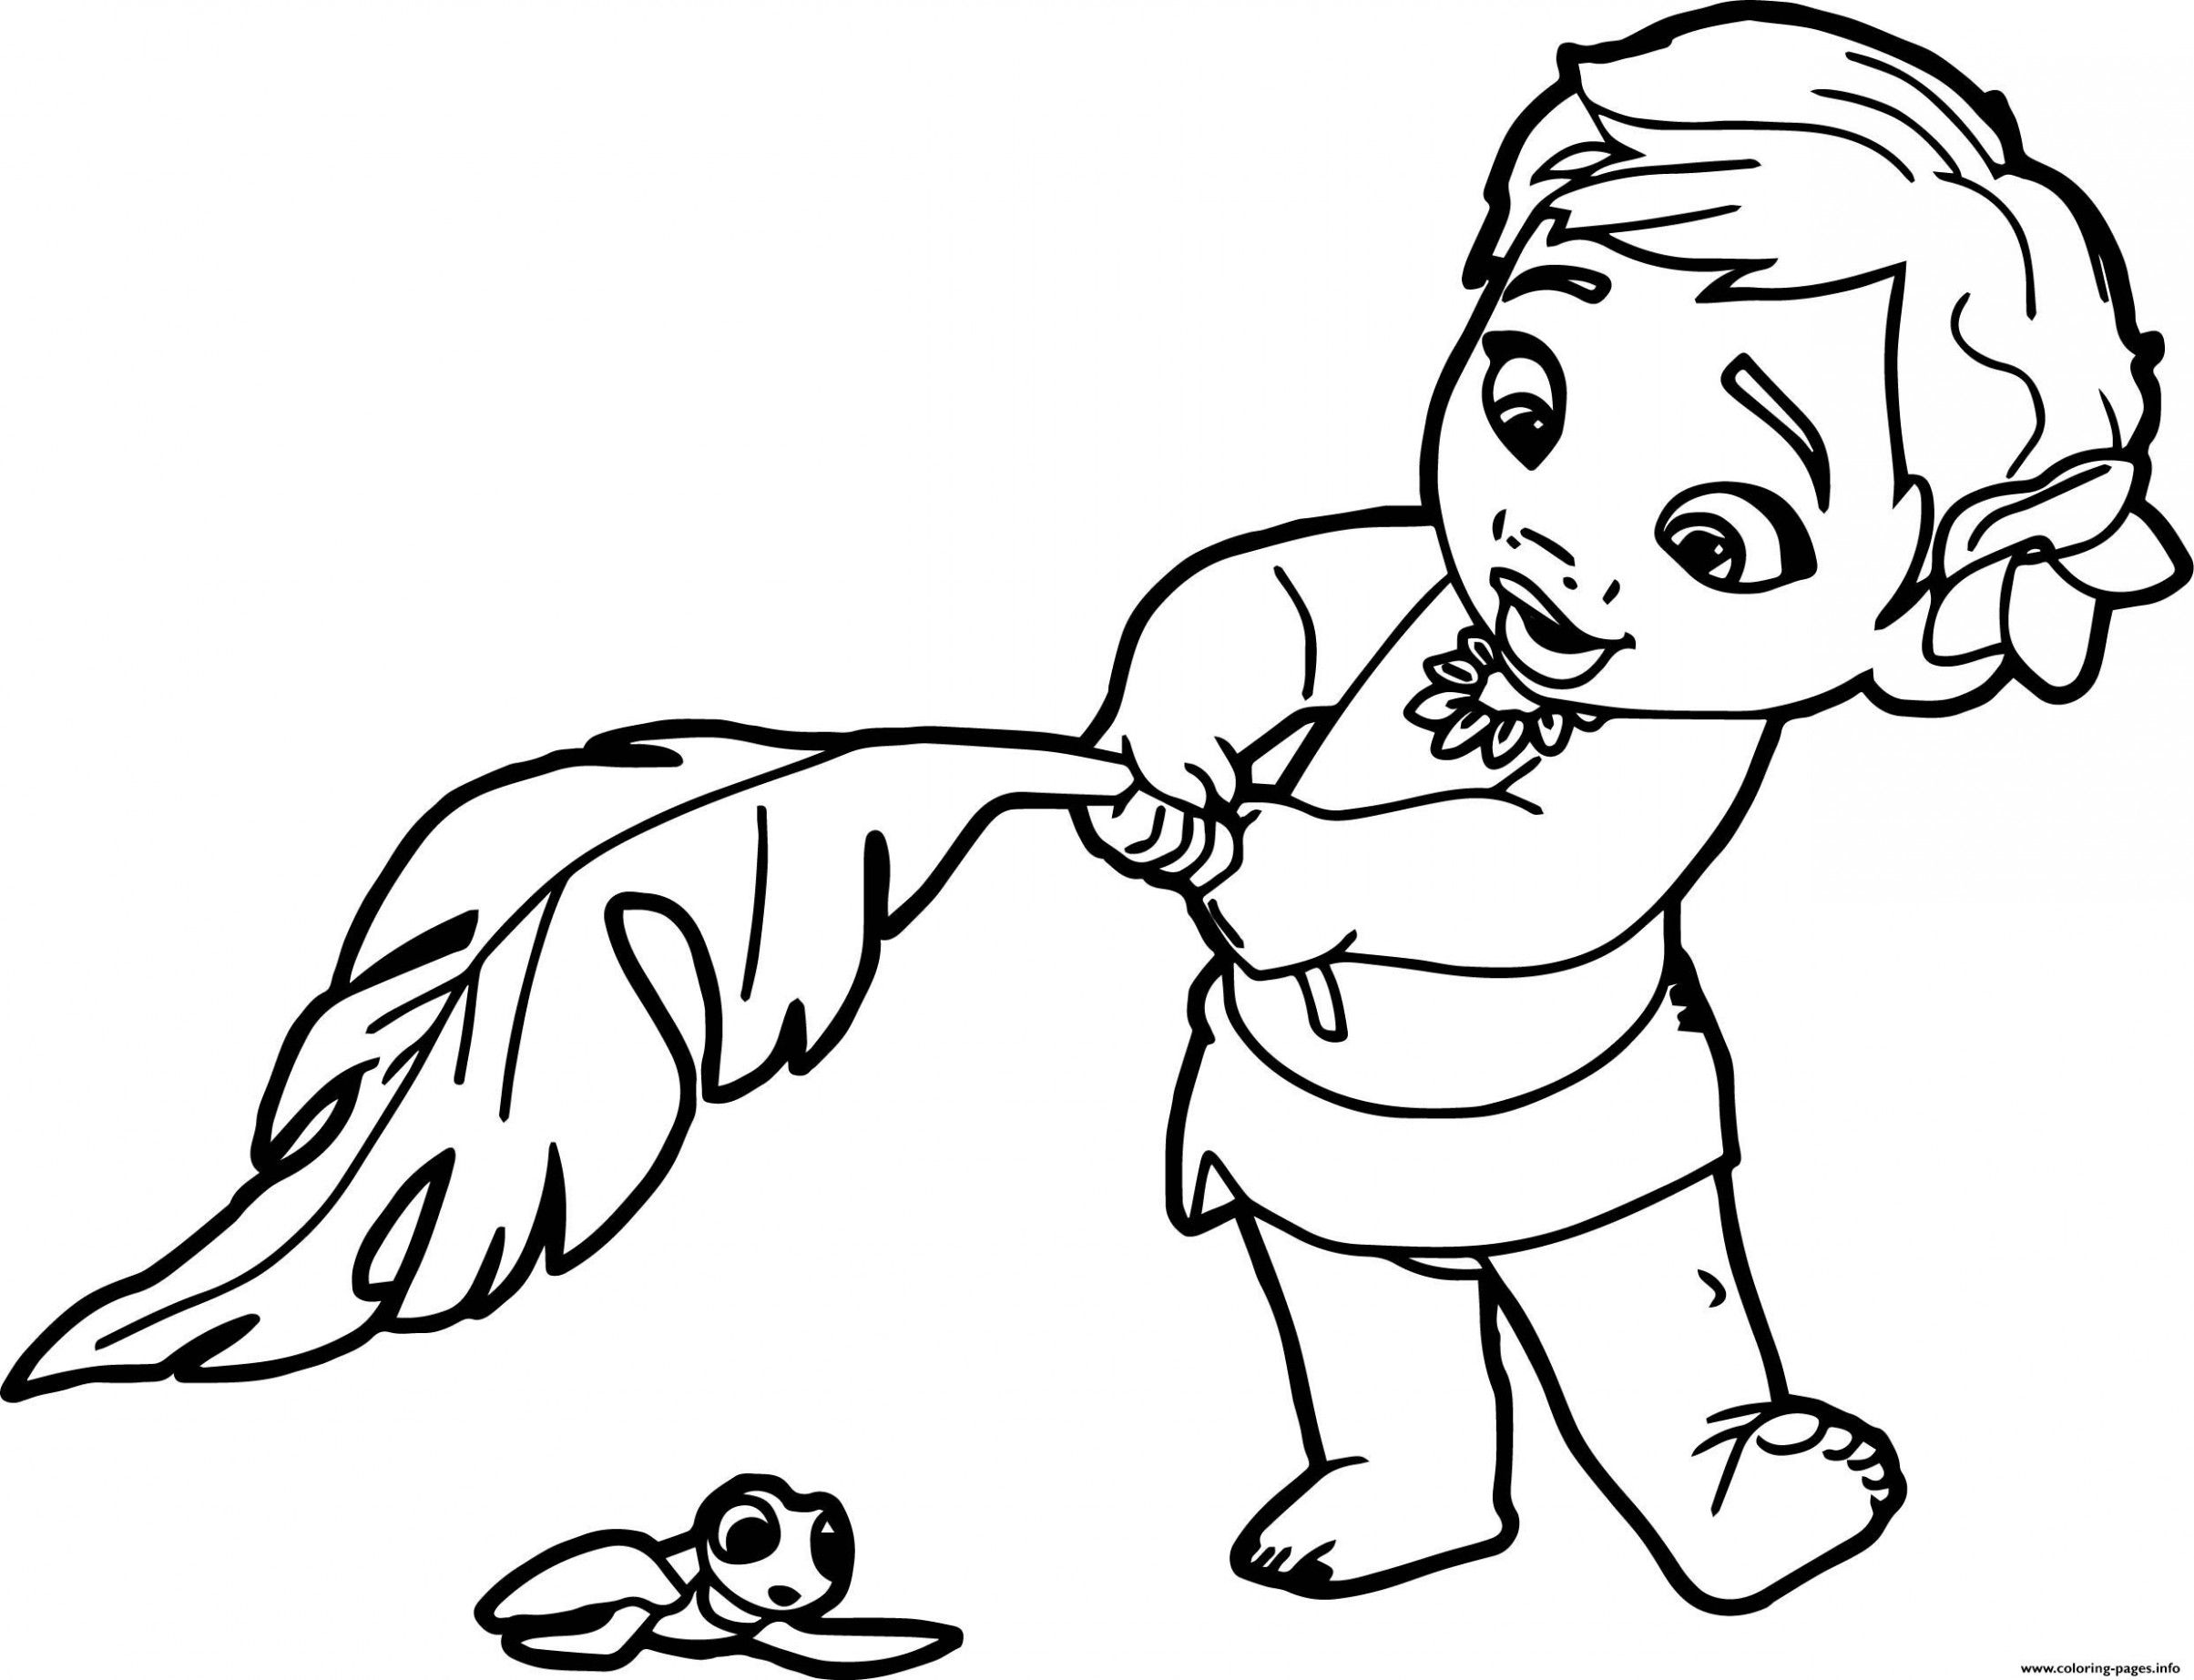 8 Baby Belle Coloring Pages In 2020 Moana Coloring Princess Coloring Pages Disney Princess Coloring Pages